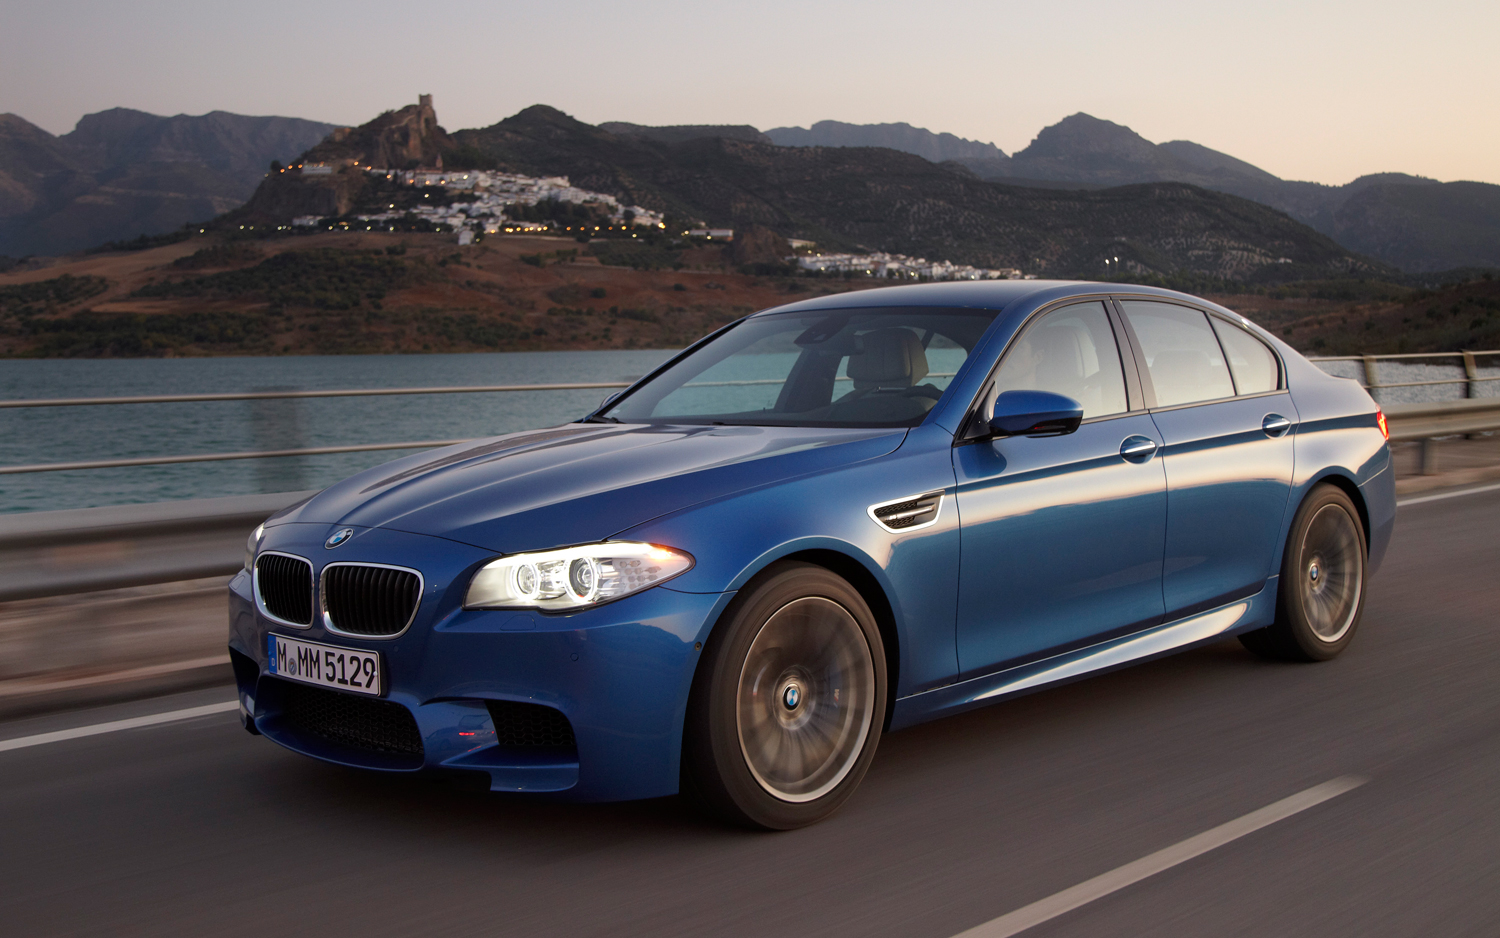 First Drive: 2012 BMW M5 - Motor Trend